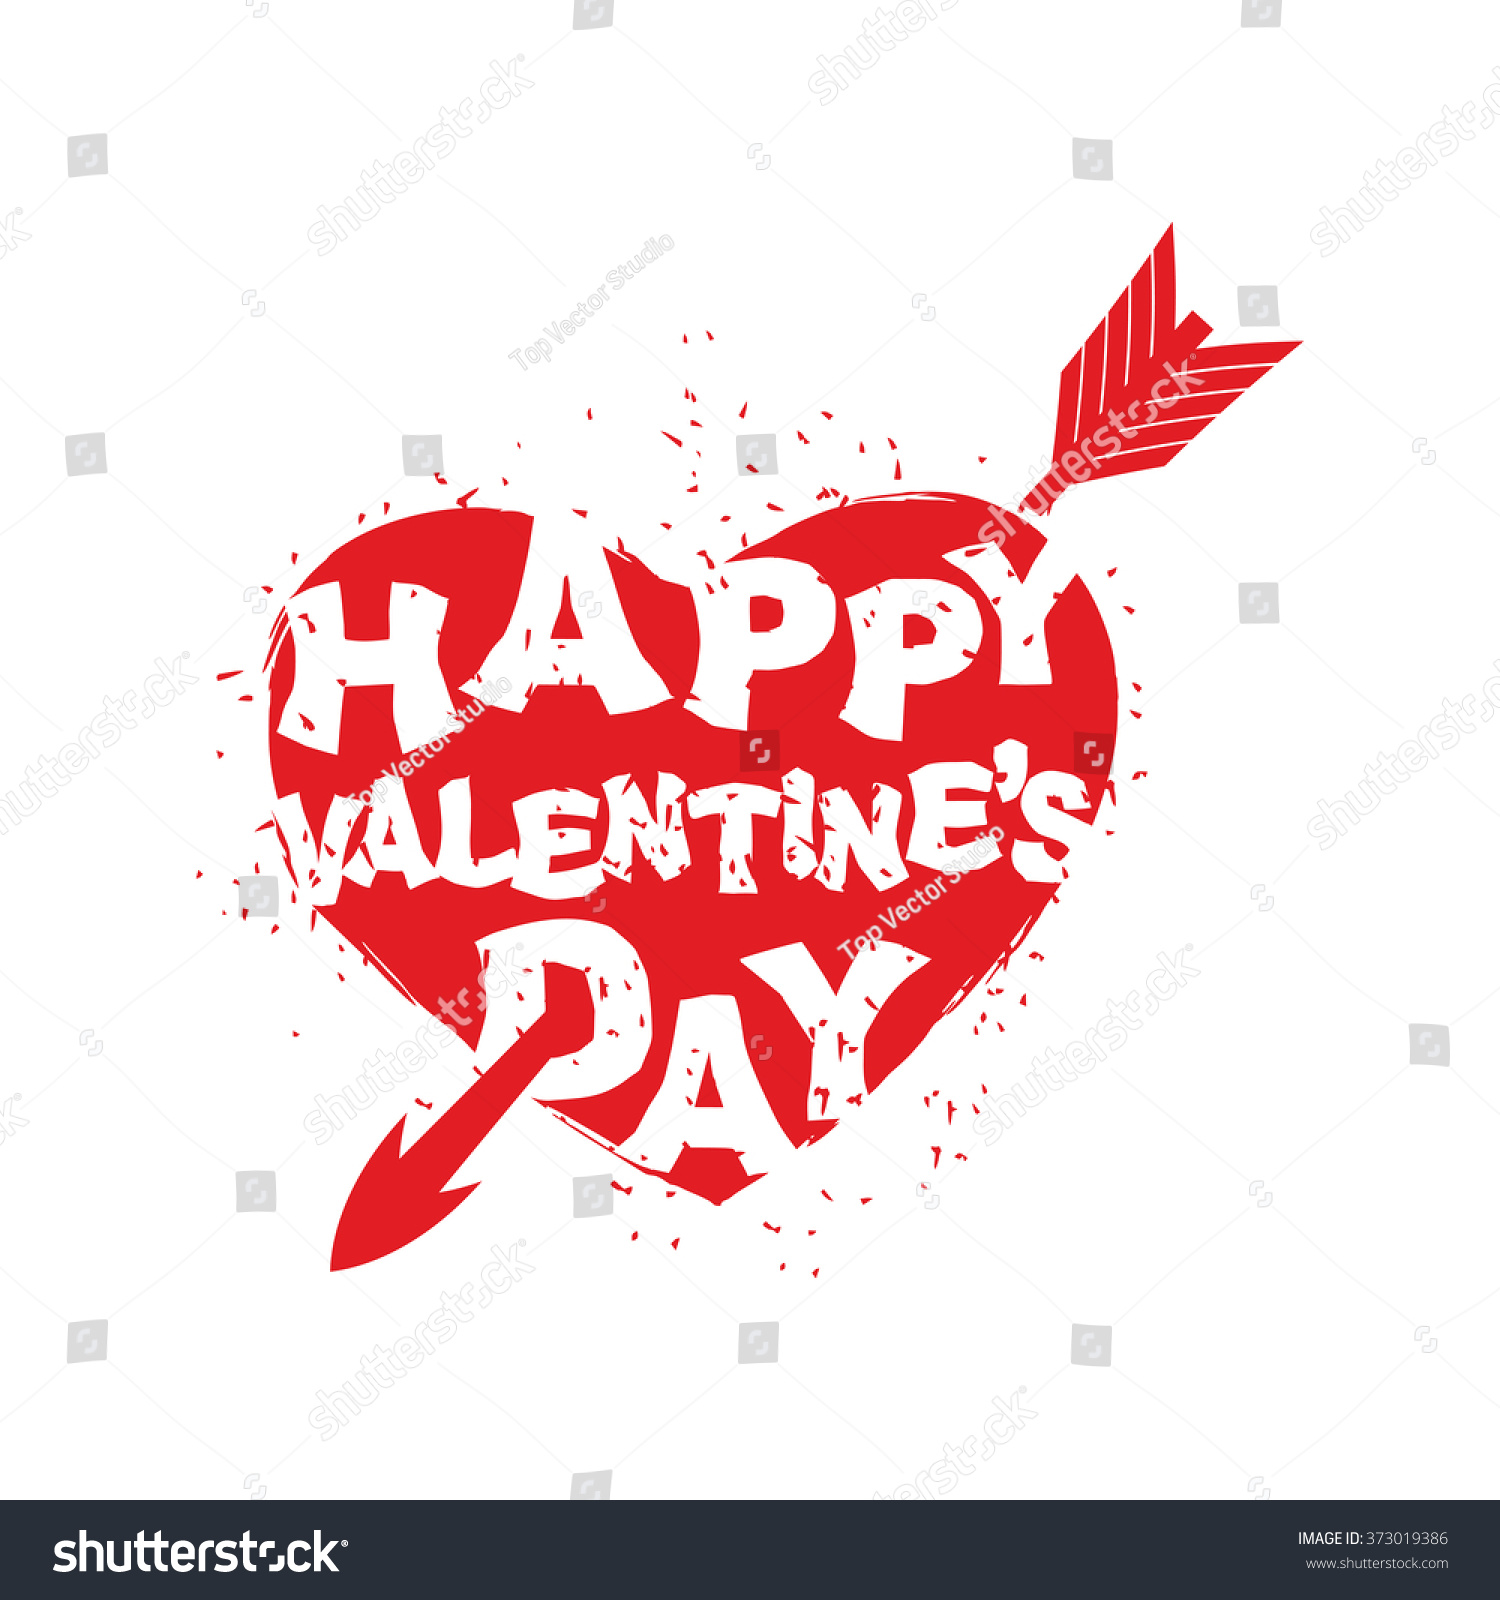 Happy Valentines Day Sign. Logo Of Heart With An Arrow. All Lovers. 14